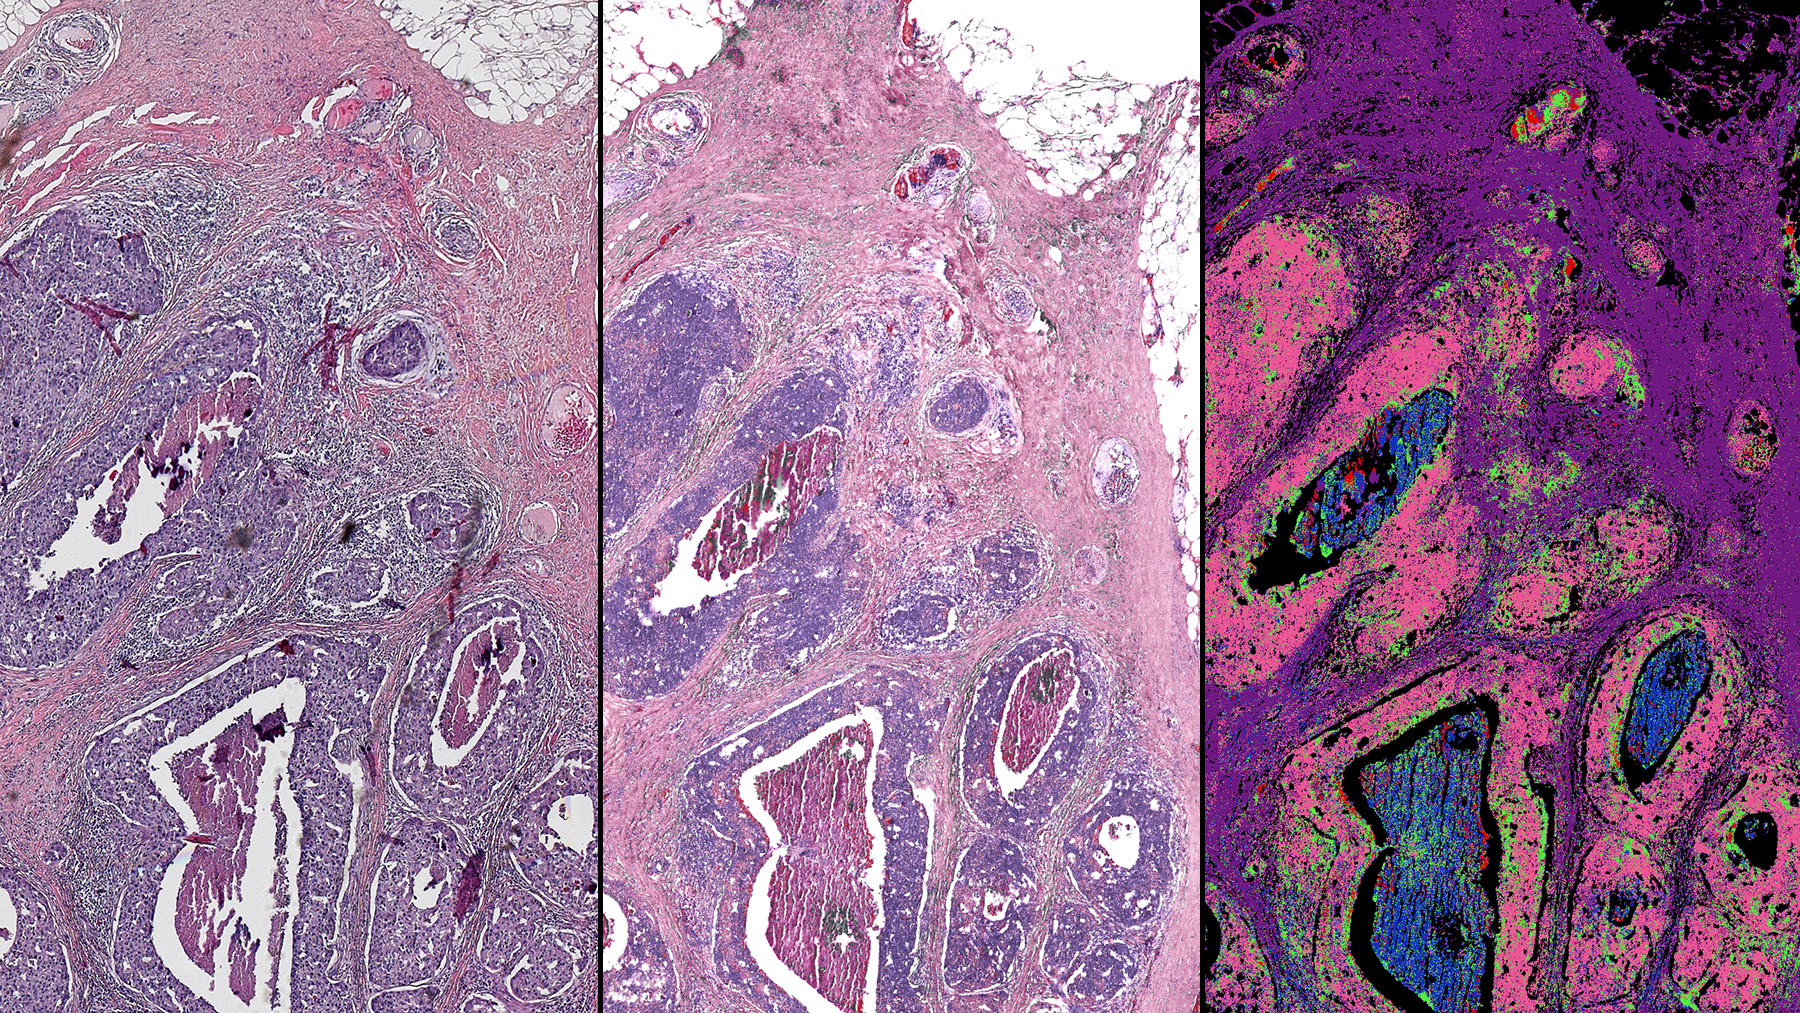 This side-by-side comparison of a breast tissue biopsy demonstrates some of the infrared-optical hybrid microscope's capabilities. Images courtesy of Rohit Bhargava